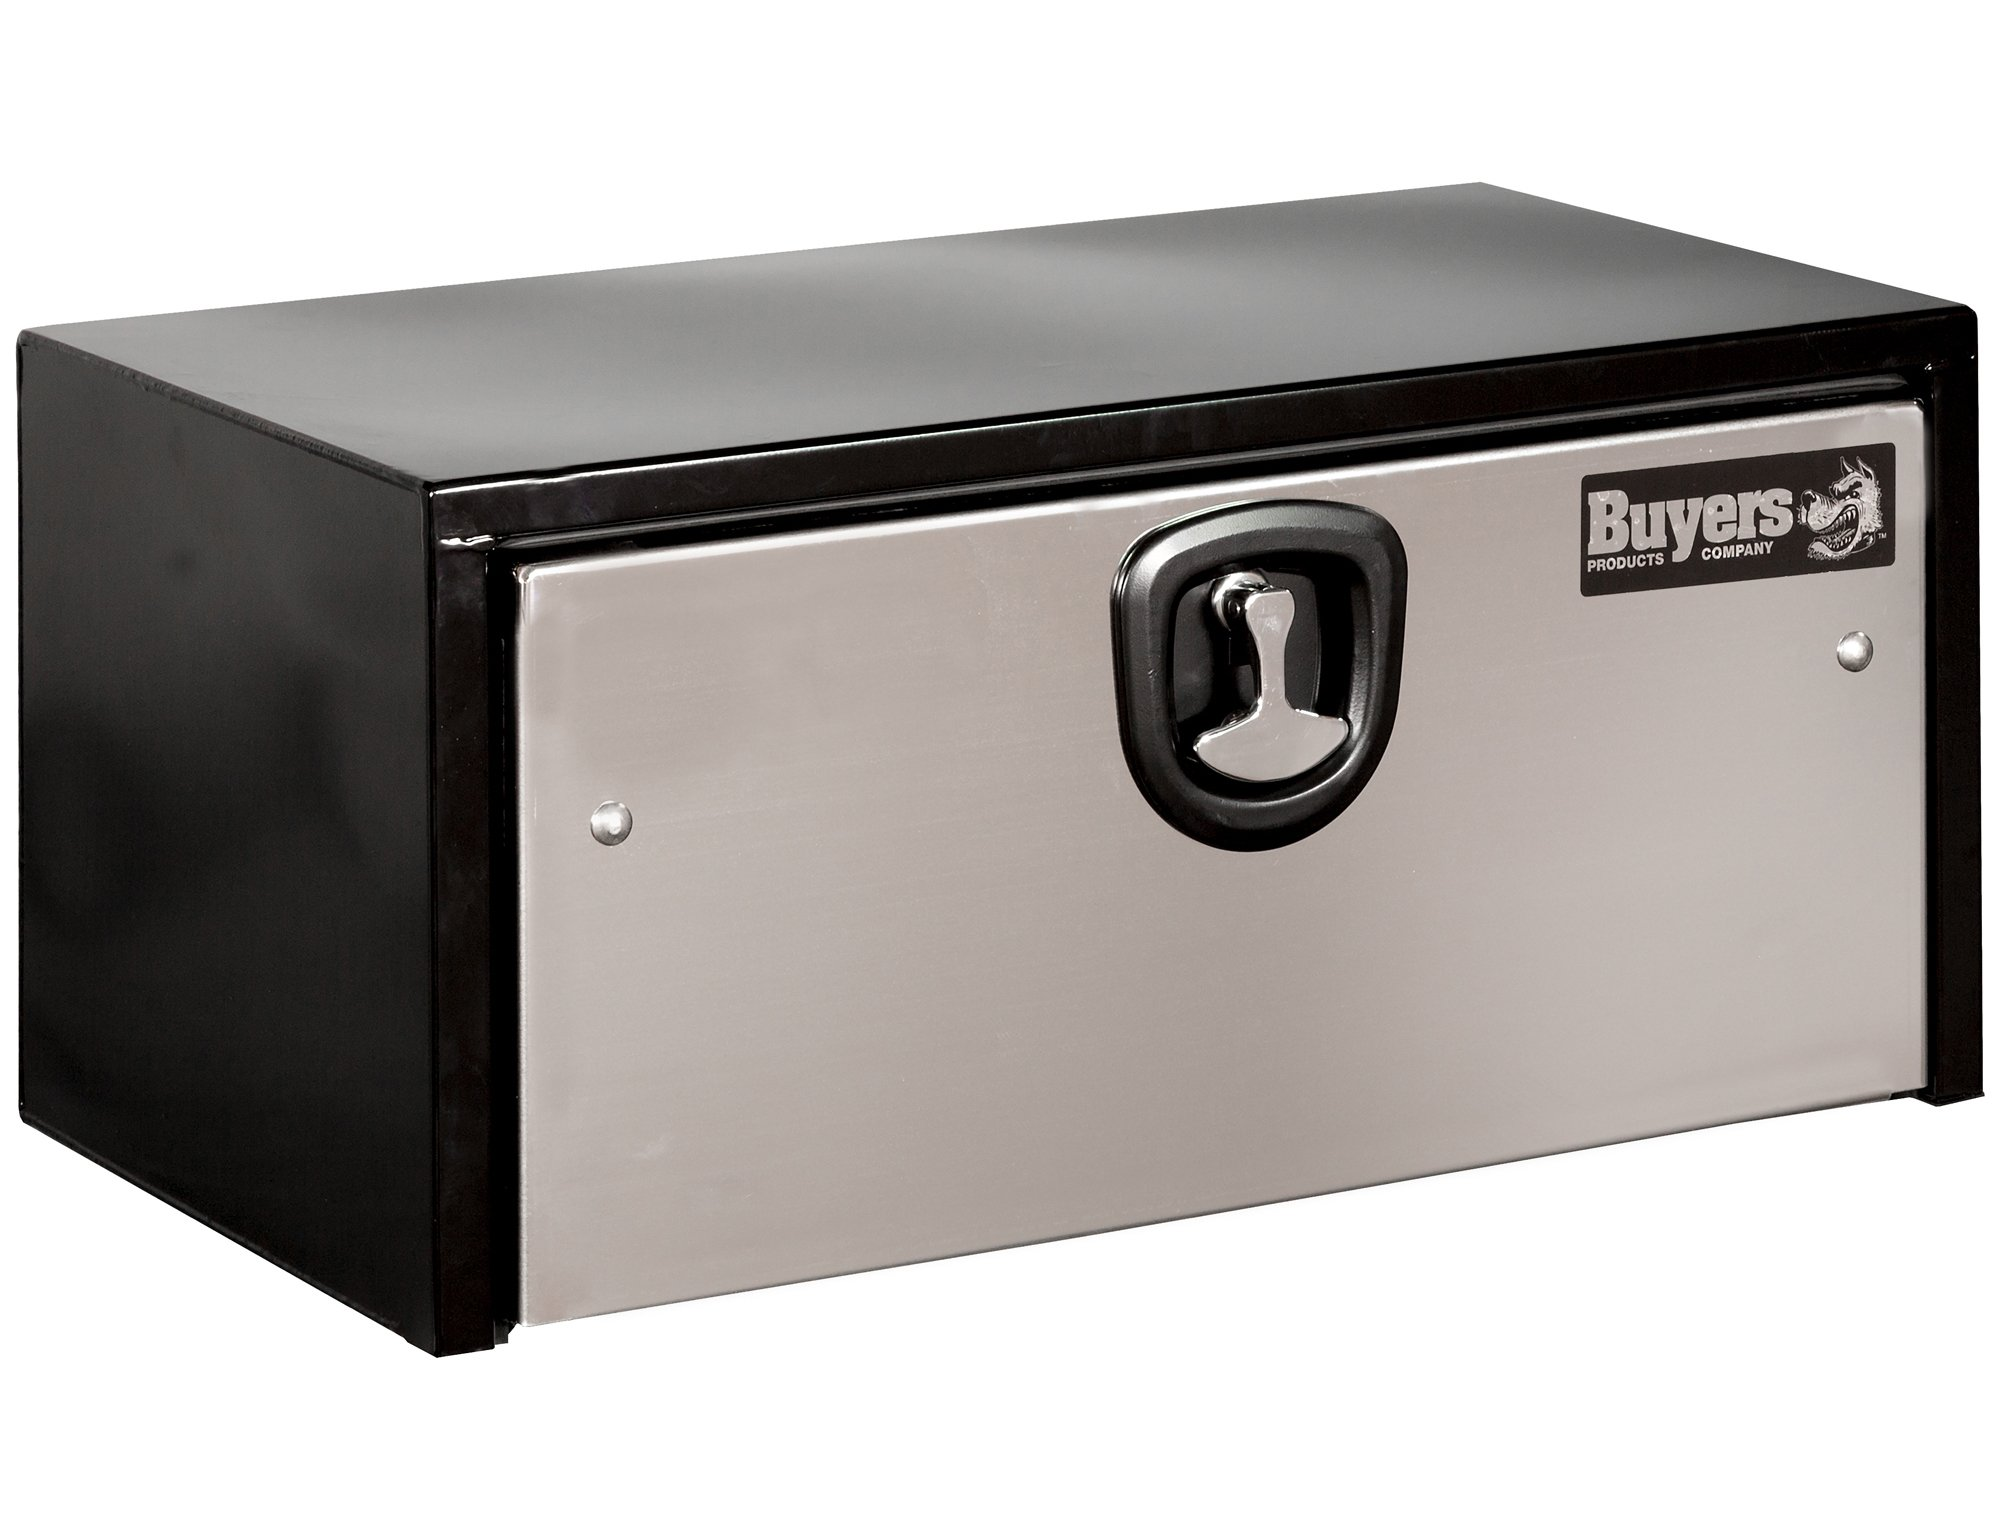 Buyers Products Black Steel Underbody Truck Box w/Stainless Steel Door (24x24x36 Inch)